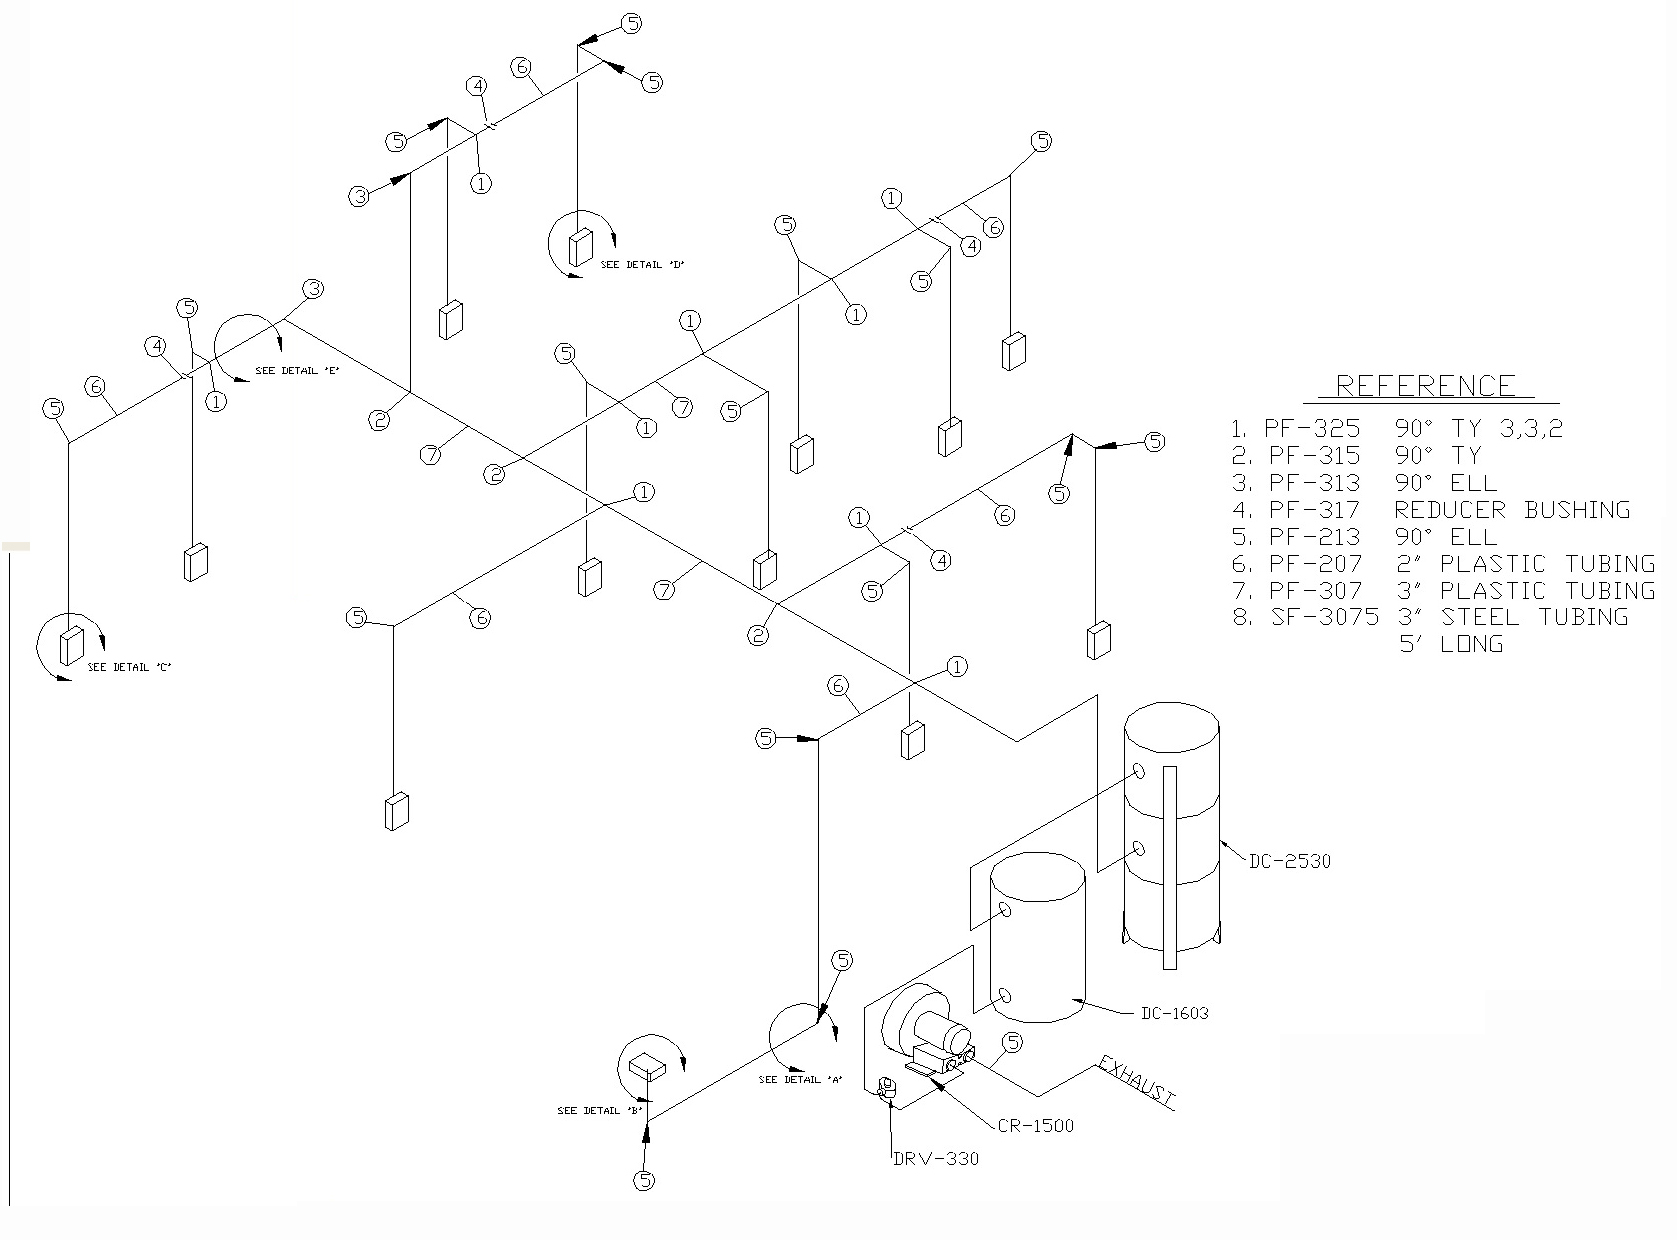 hight resolution of piping and tubing layout legend inlet valves x inlet valves selected for calculation a b and c three inlet valve locations have been selected for